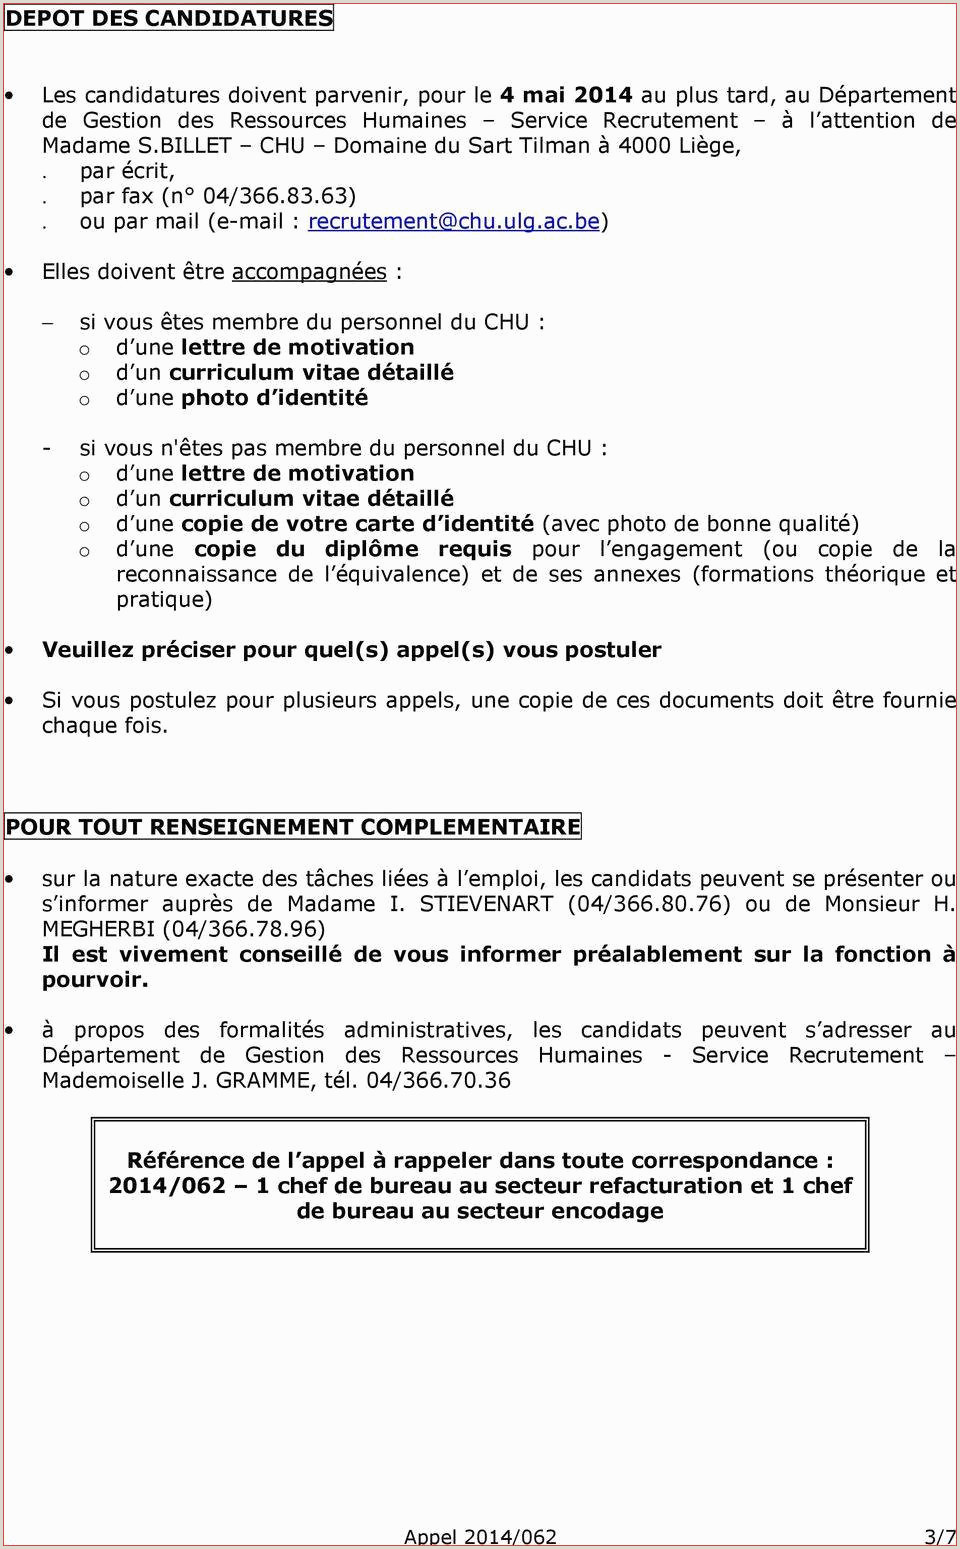 Exemple De Cv Non Diplomé 61 Lettre De Motivation Vae Exemple